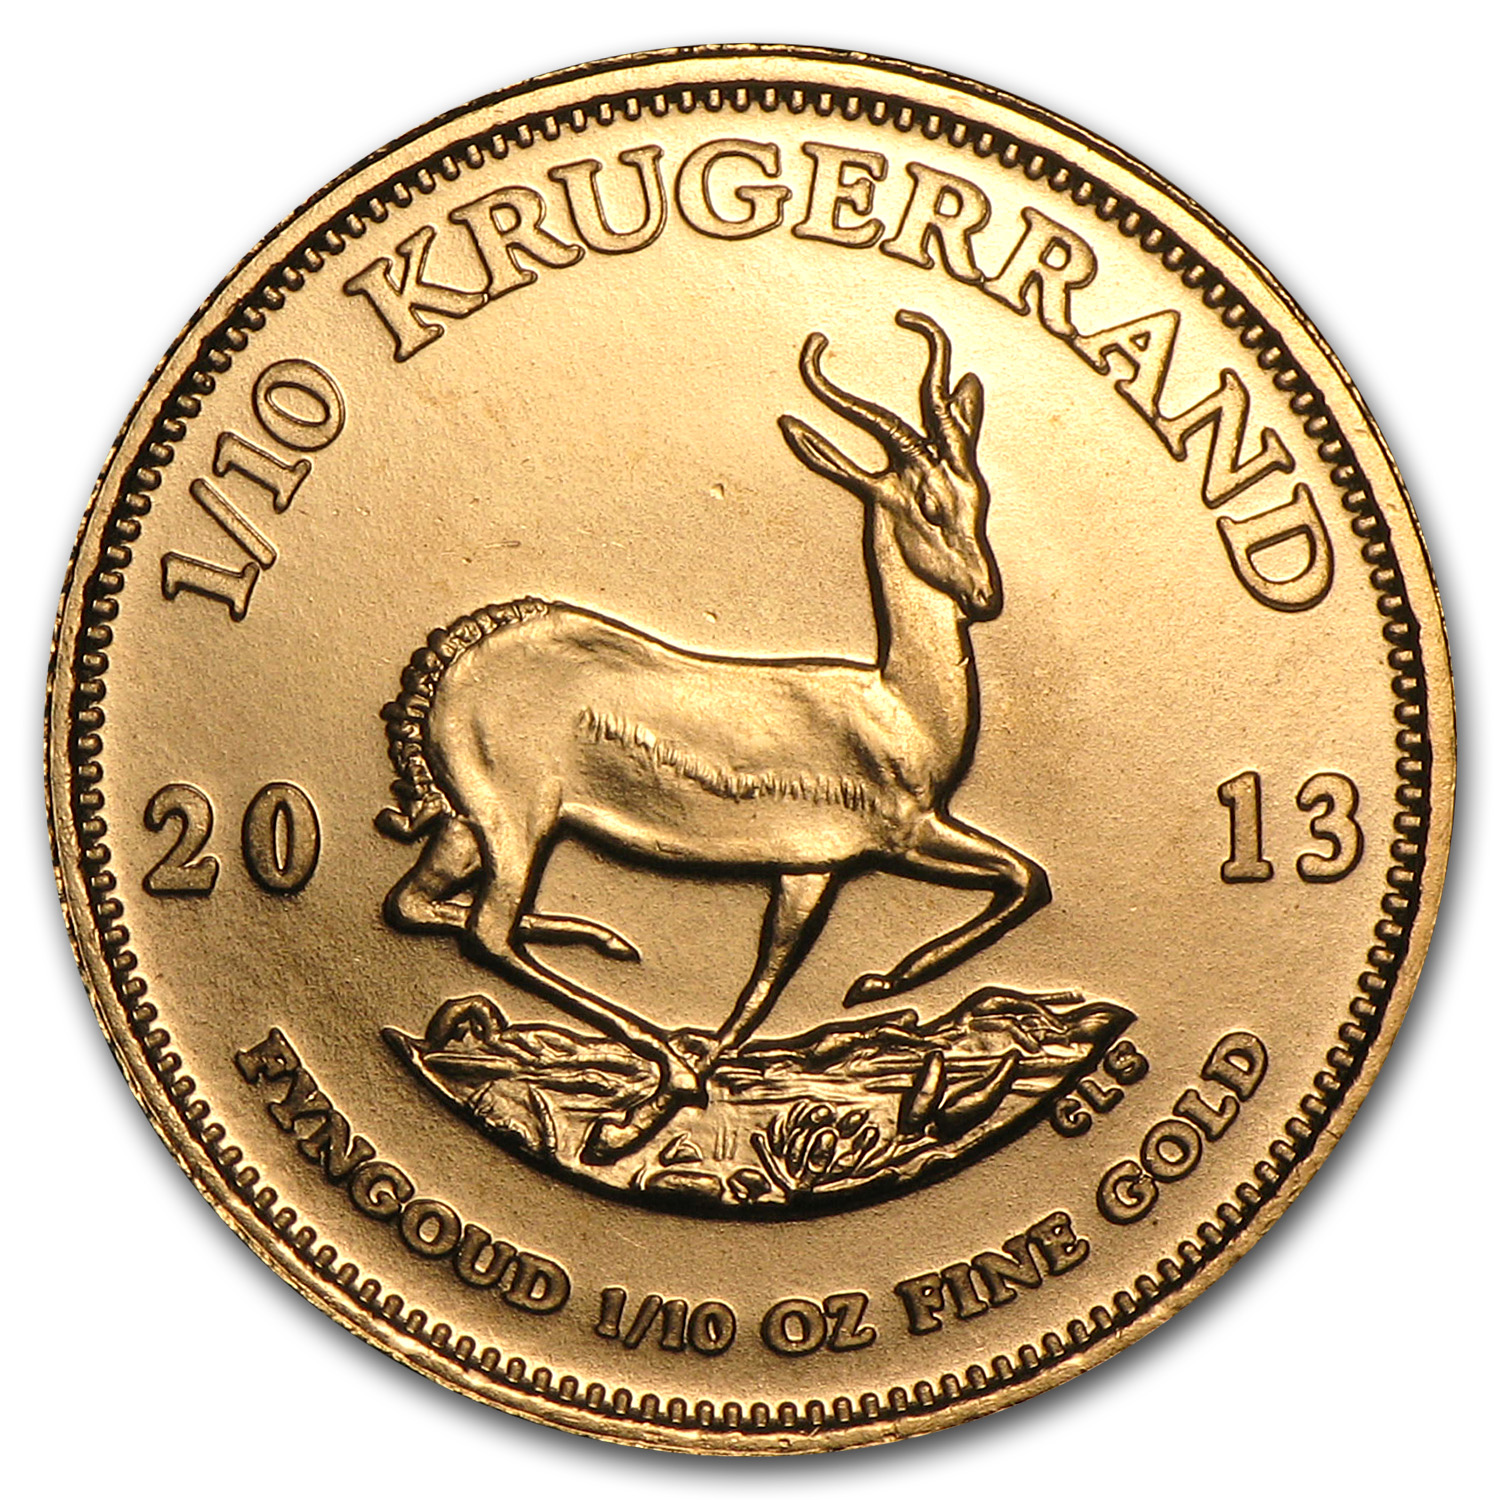 2013 South Africa 1/10 oz Gold Krugerrand